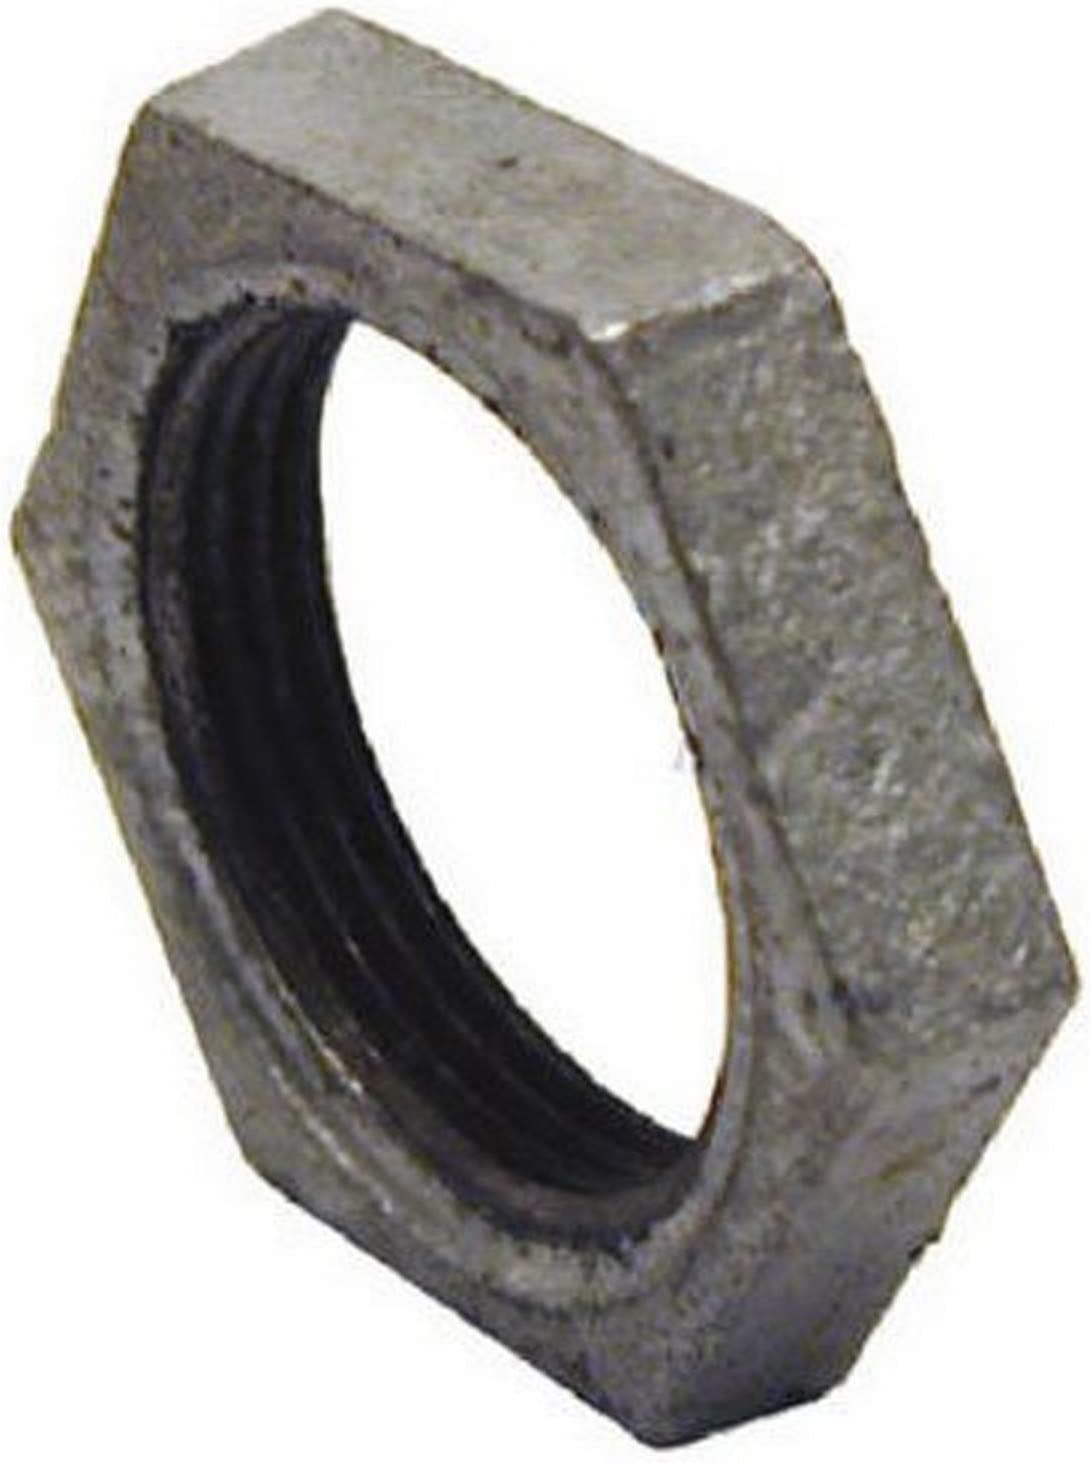 Time sale pannext fittings corp g-lnt07 3 Galvanized 4